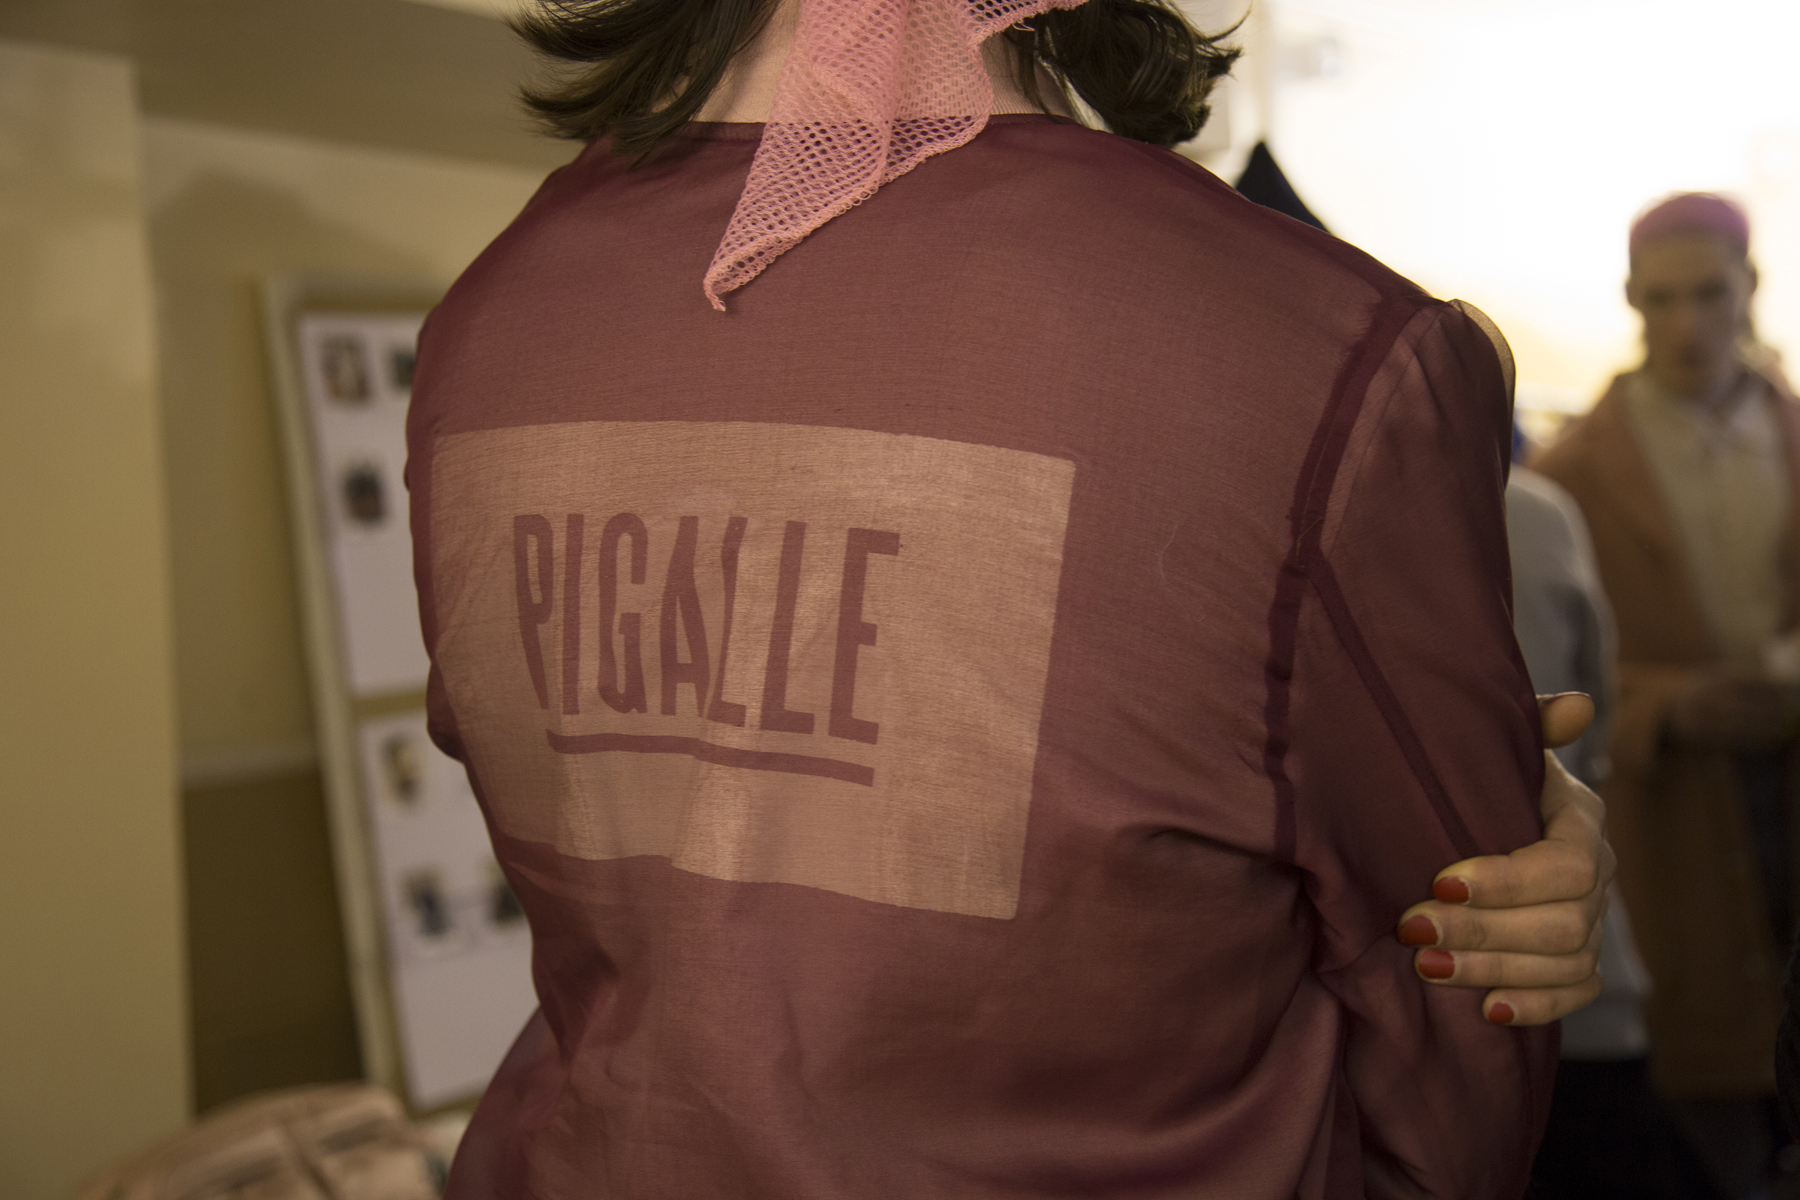 Backstage at Pigalle From Its Paris Fashion Week 2016 Fall/Winter Runway Show